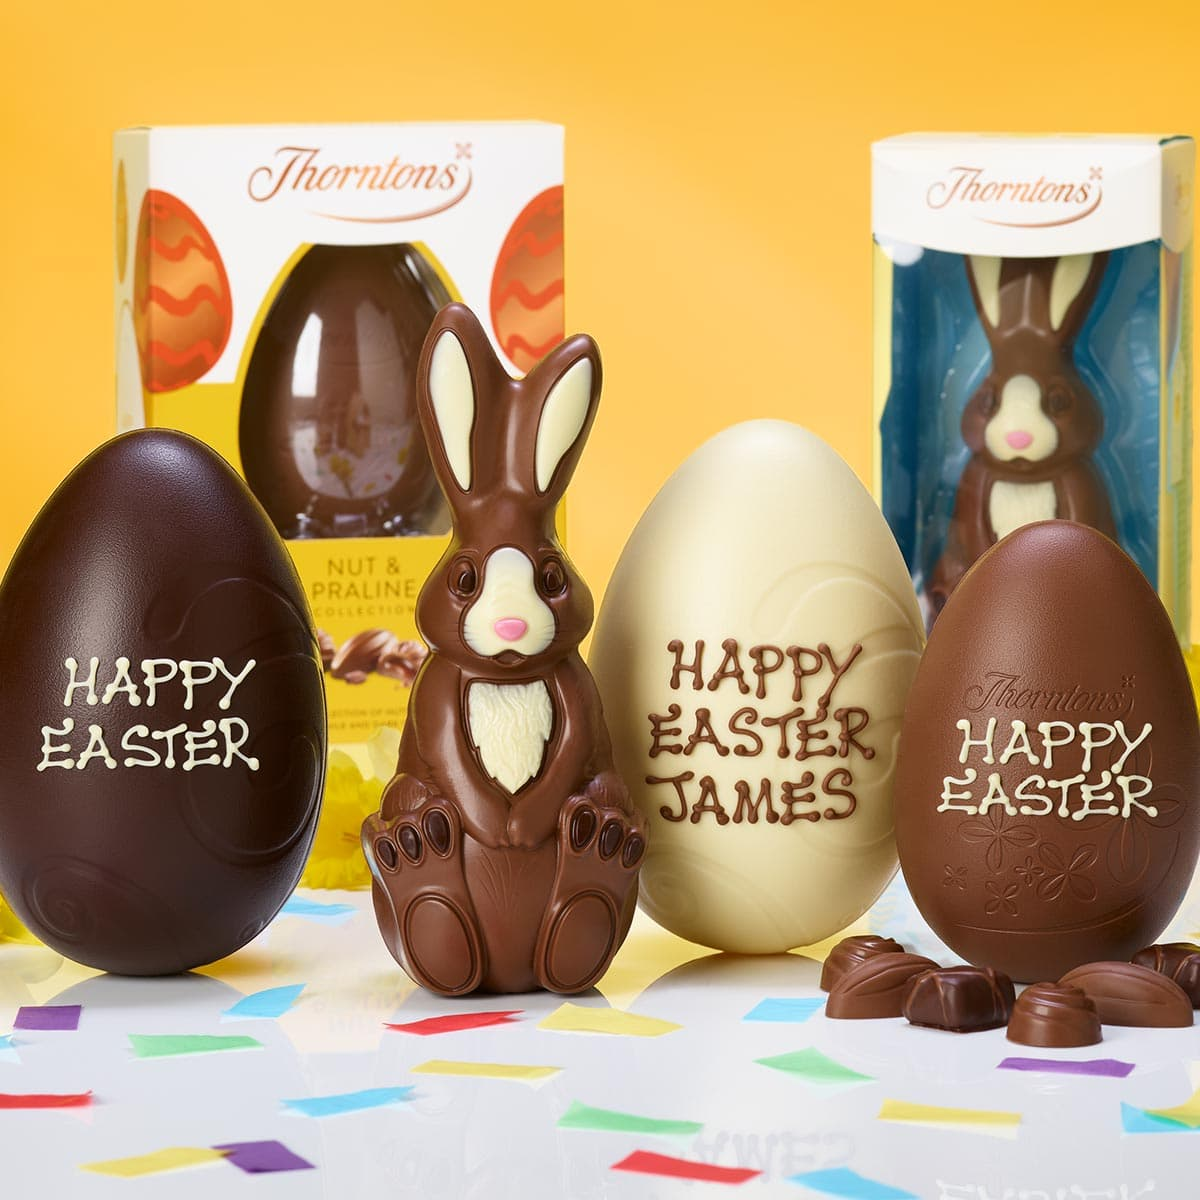 Three personalised chocolate Easter eggs and a chocolate Easter Bunny